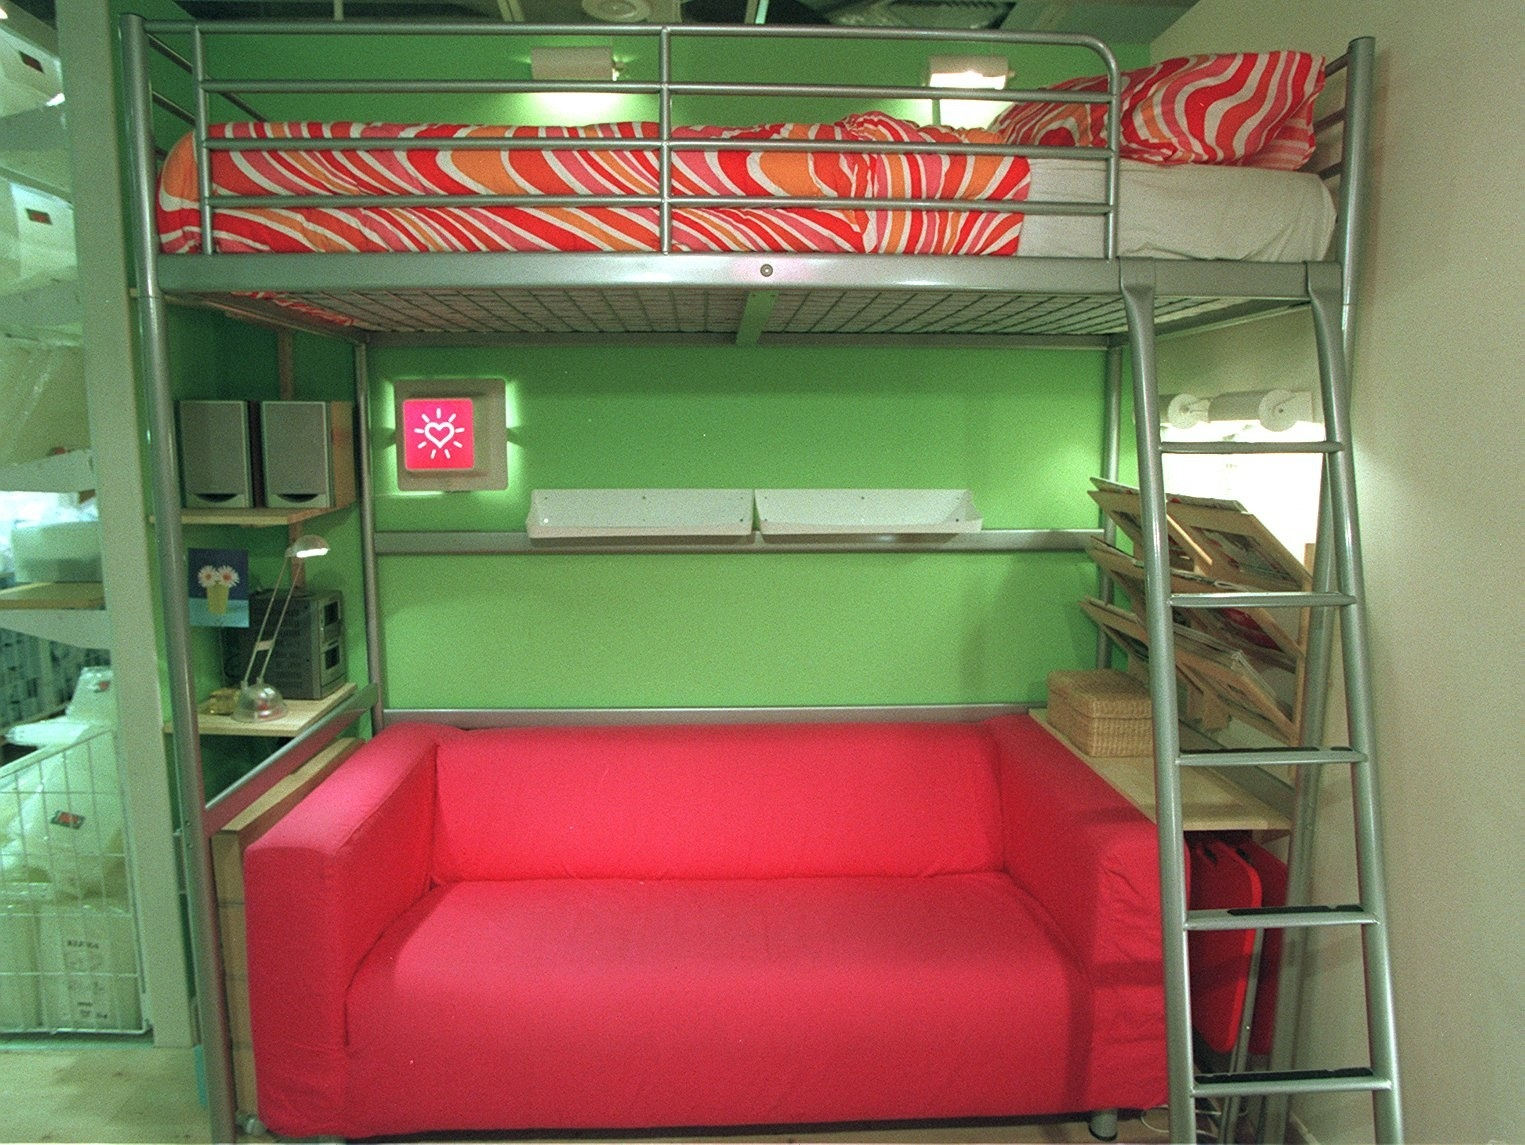 An Ikea metal loft bed set up with a pink couch on the bottom of it